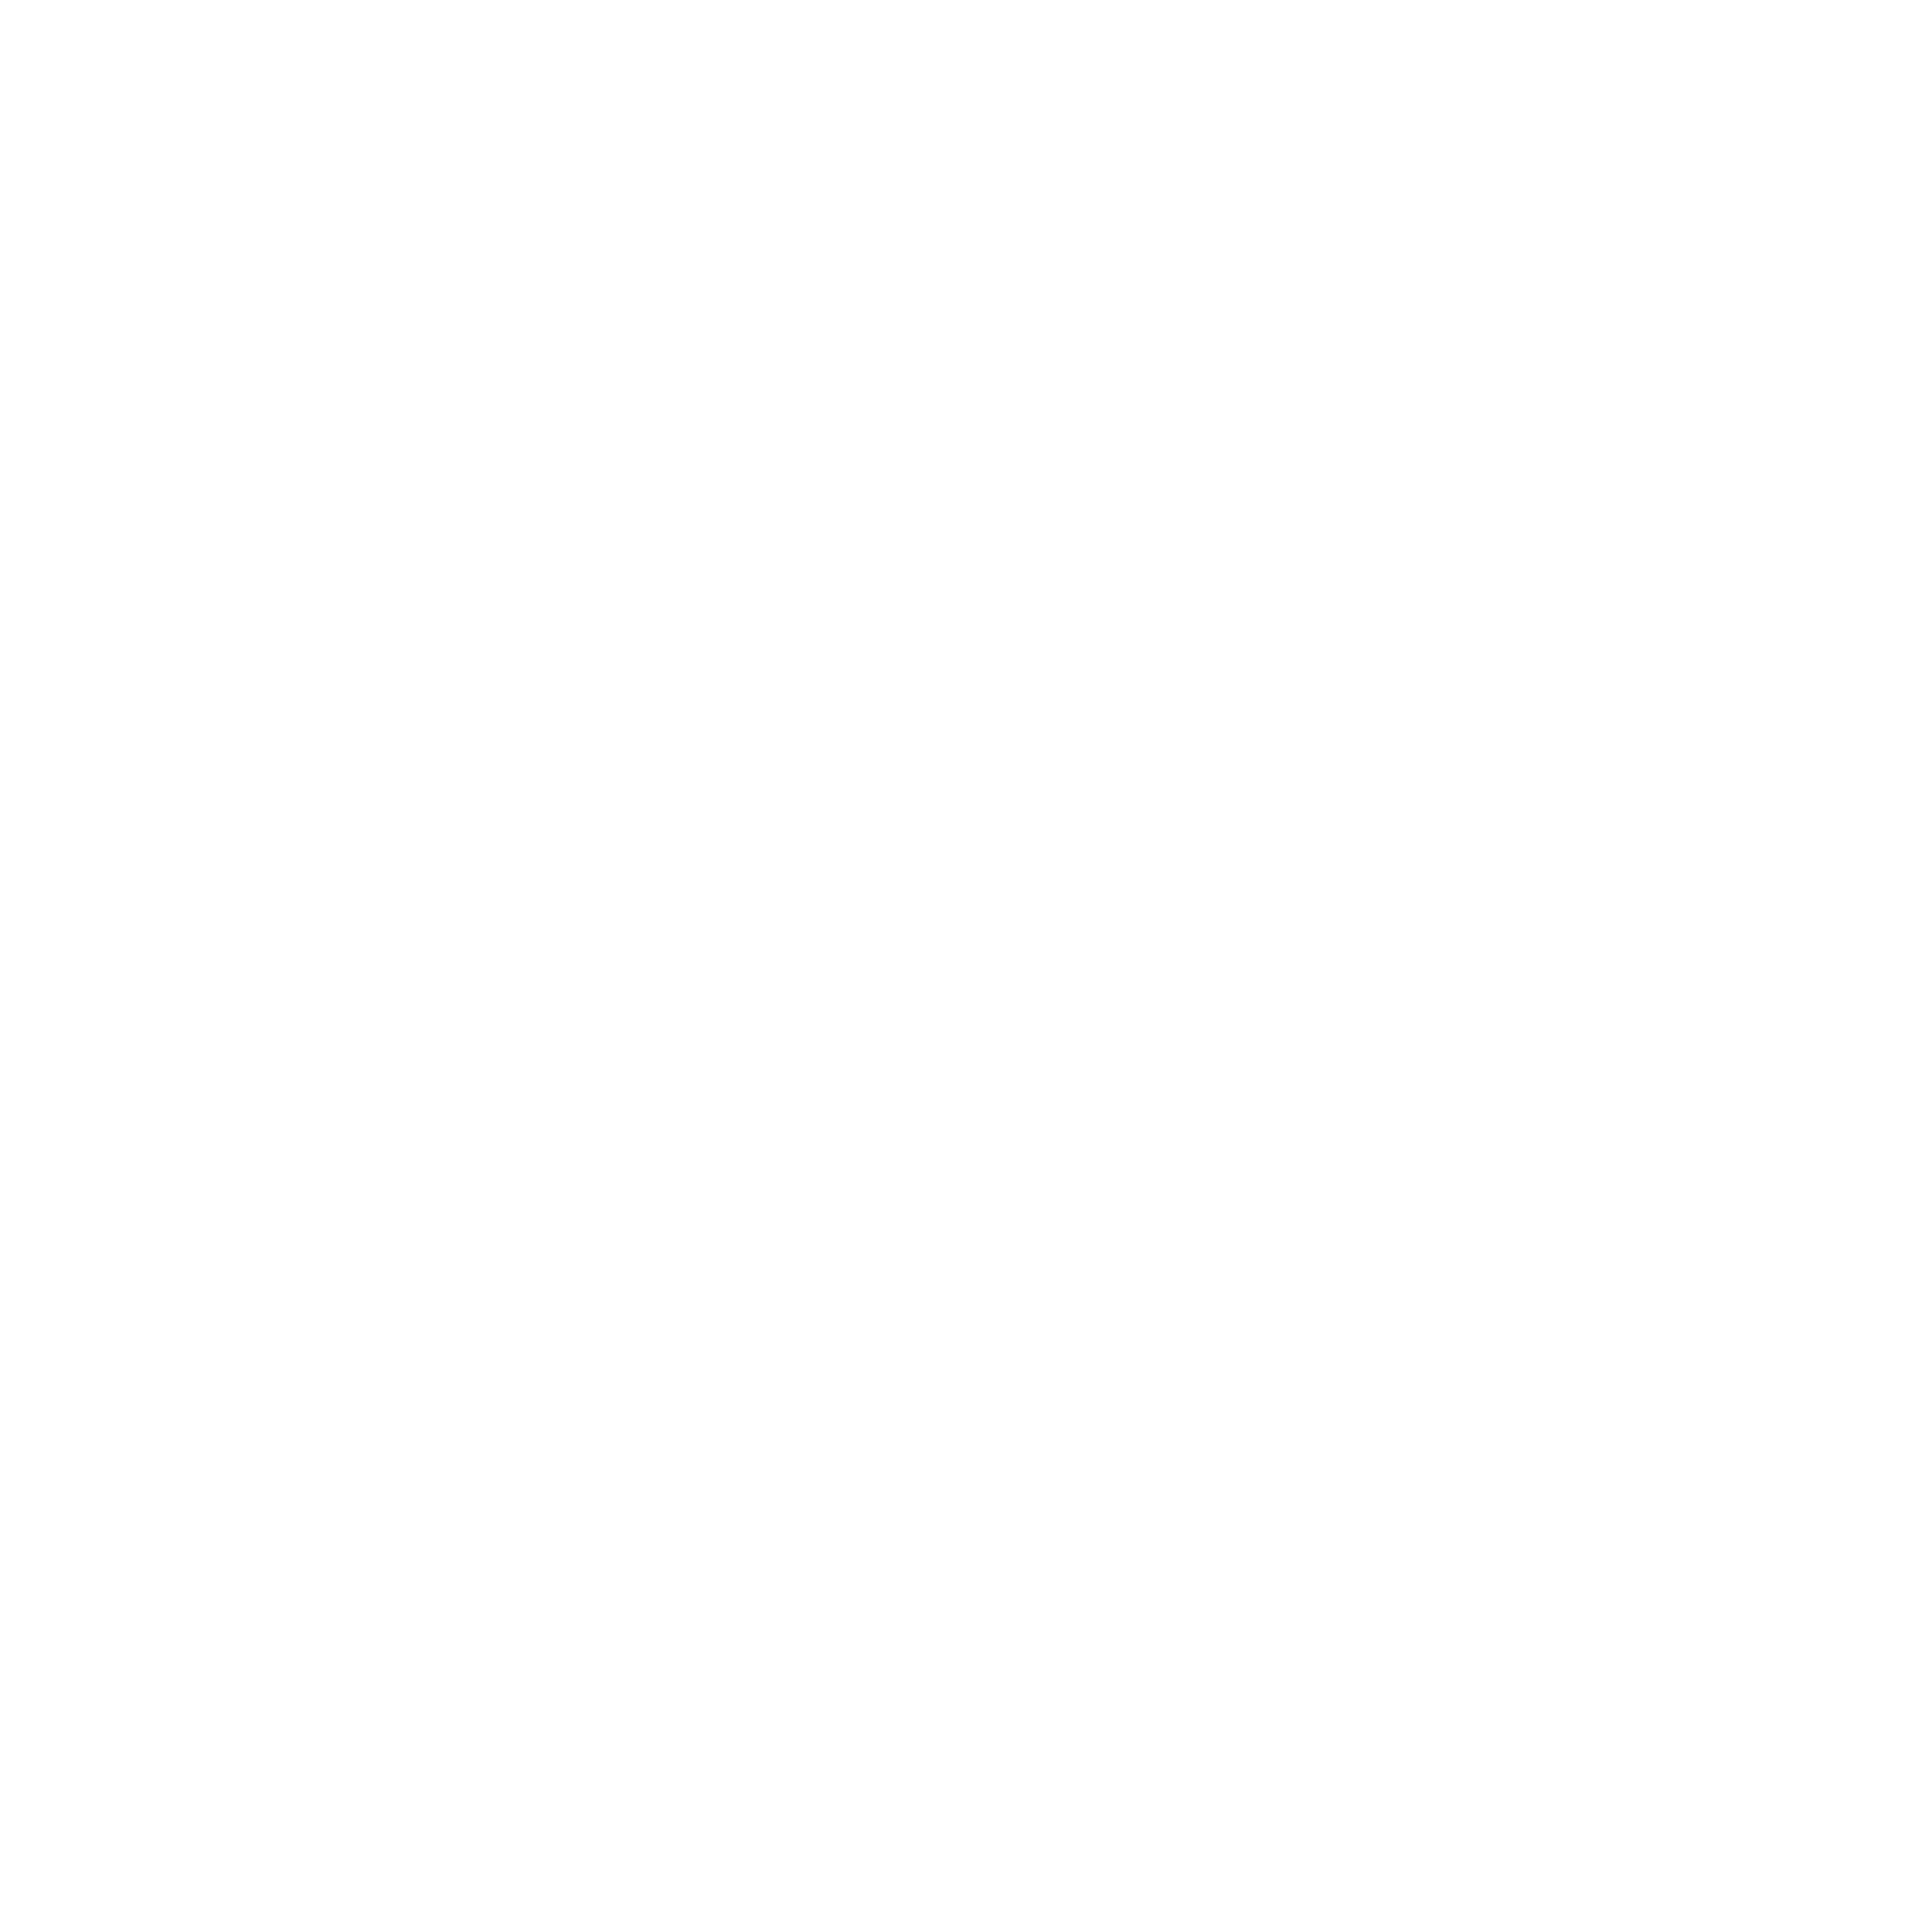 Marketplace drawing fish market. Doncaster the uk s